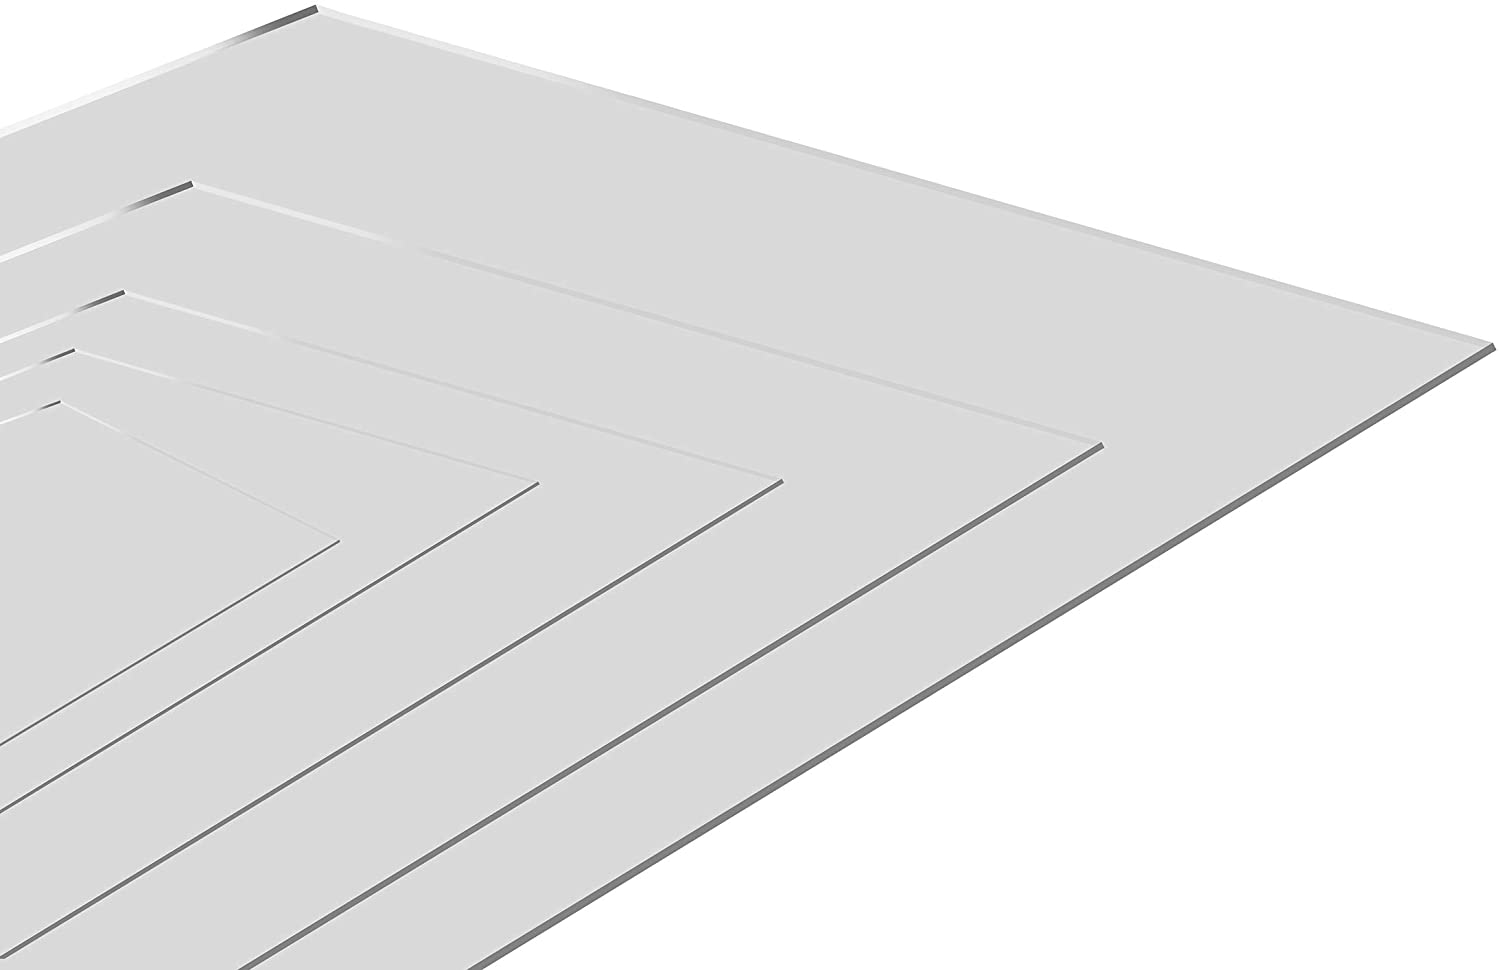 2.0 mm Ultra-Transparent Acrylic Plexiglass Photo Size Sheet Picture Frame Replacement Glass 6x8 inches Pack of 10 Pcs.